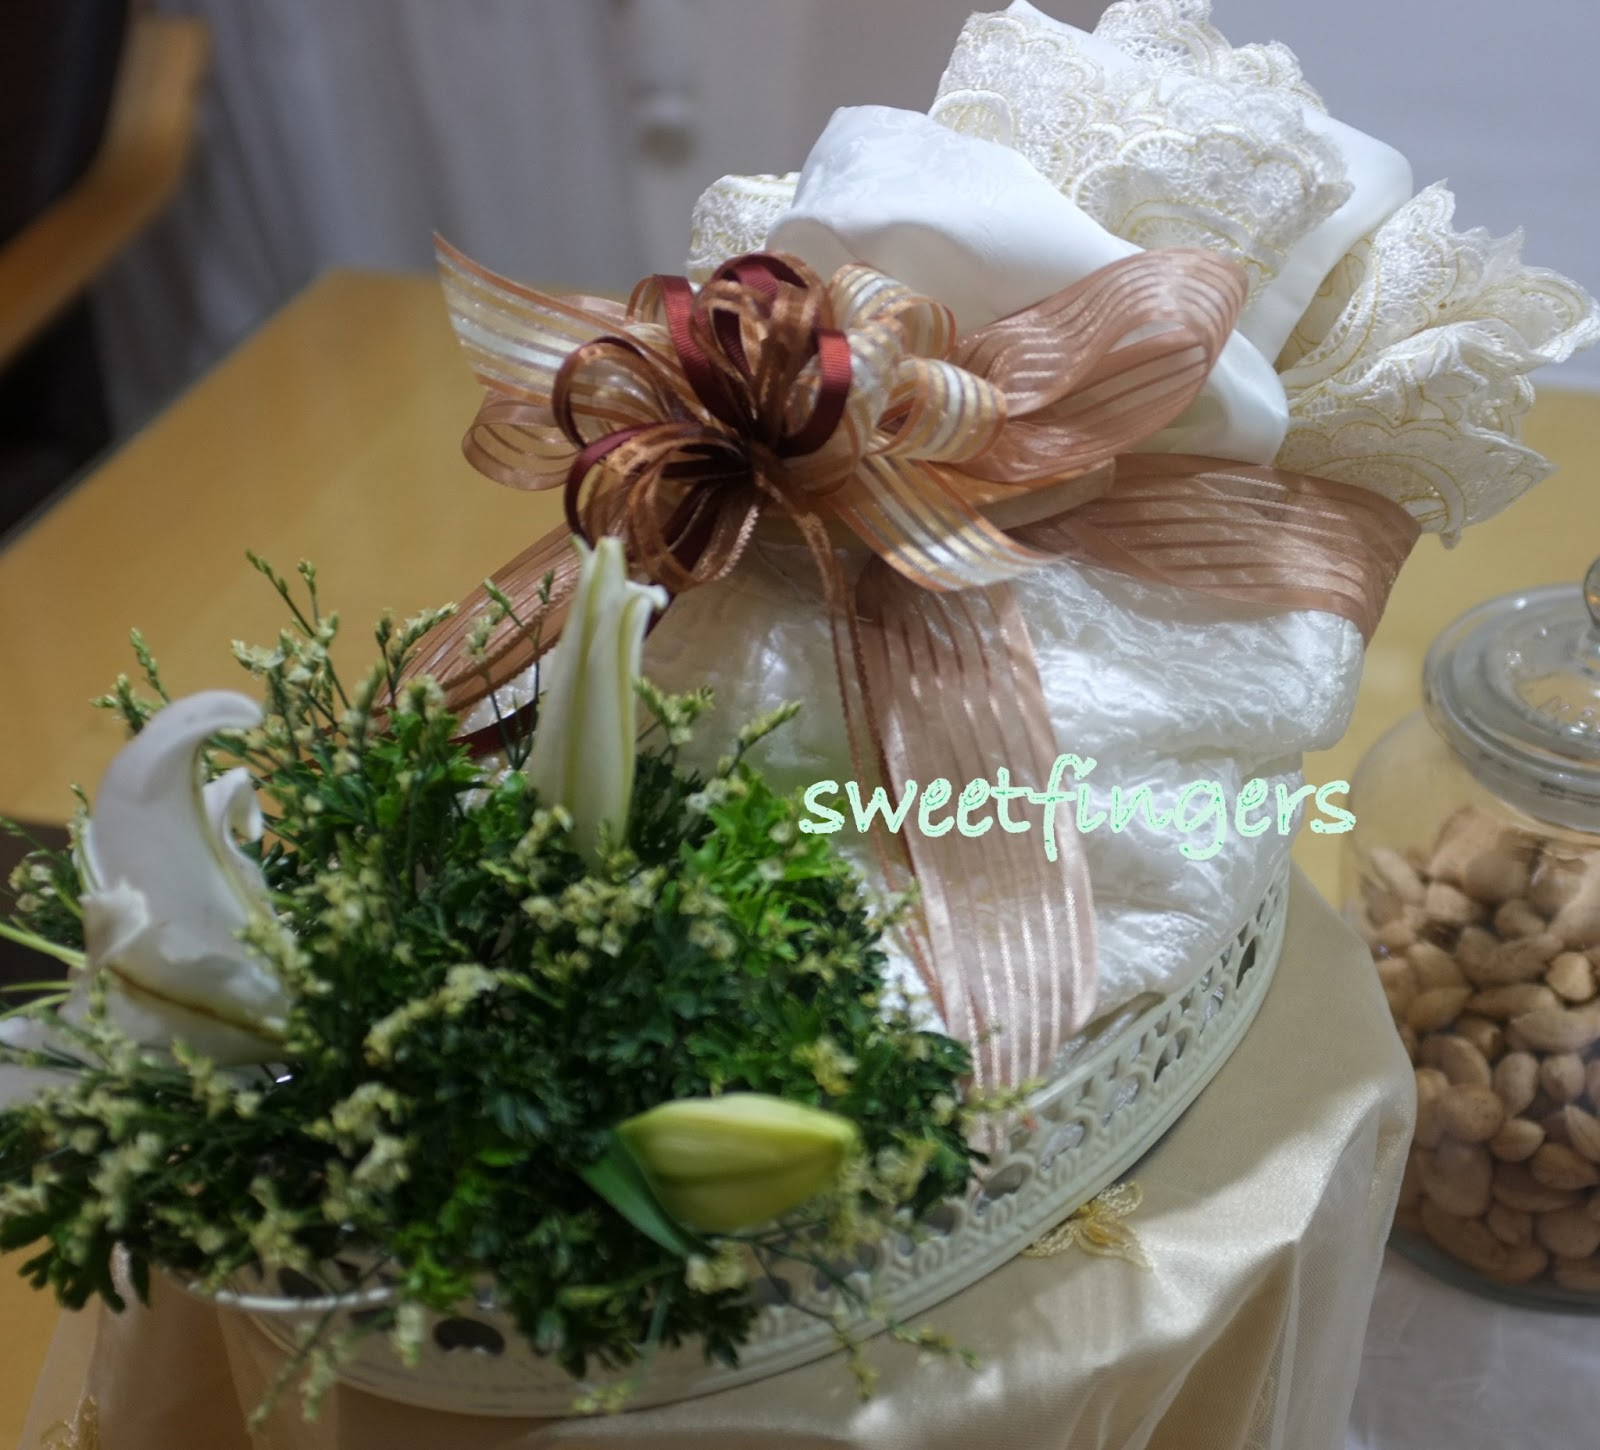 Yans Sweet Fingers Wedding Gift With Fresh White Lily Mukena Bouquet The